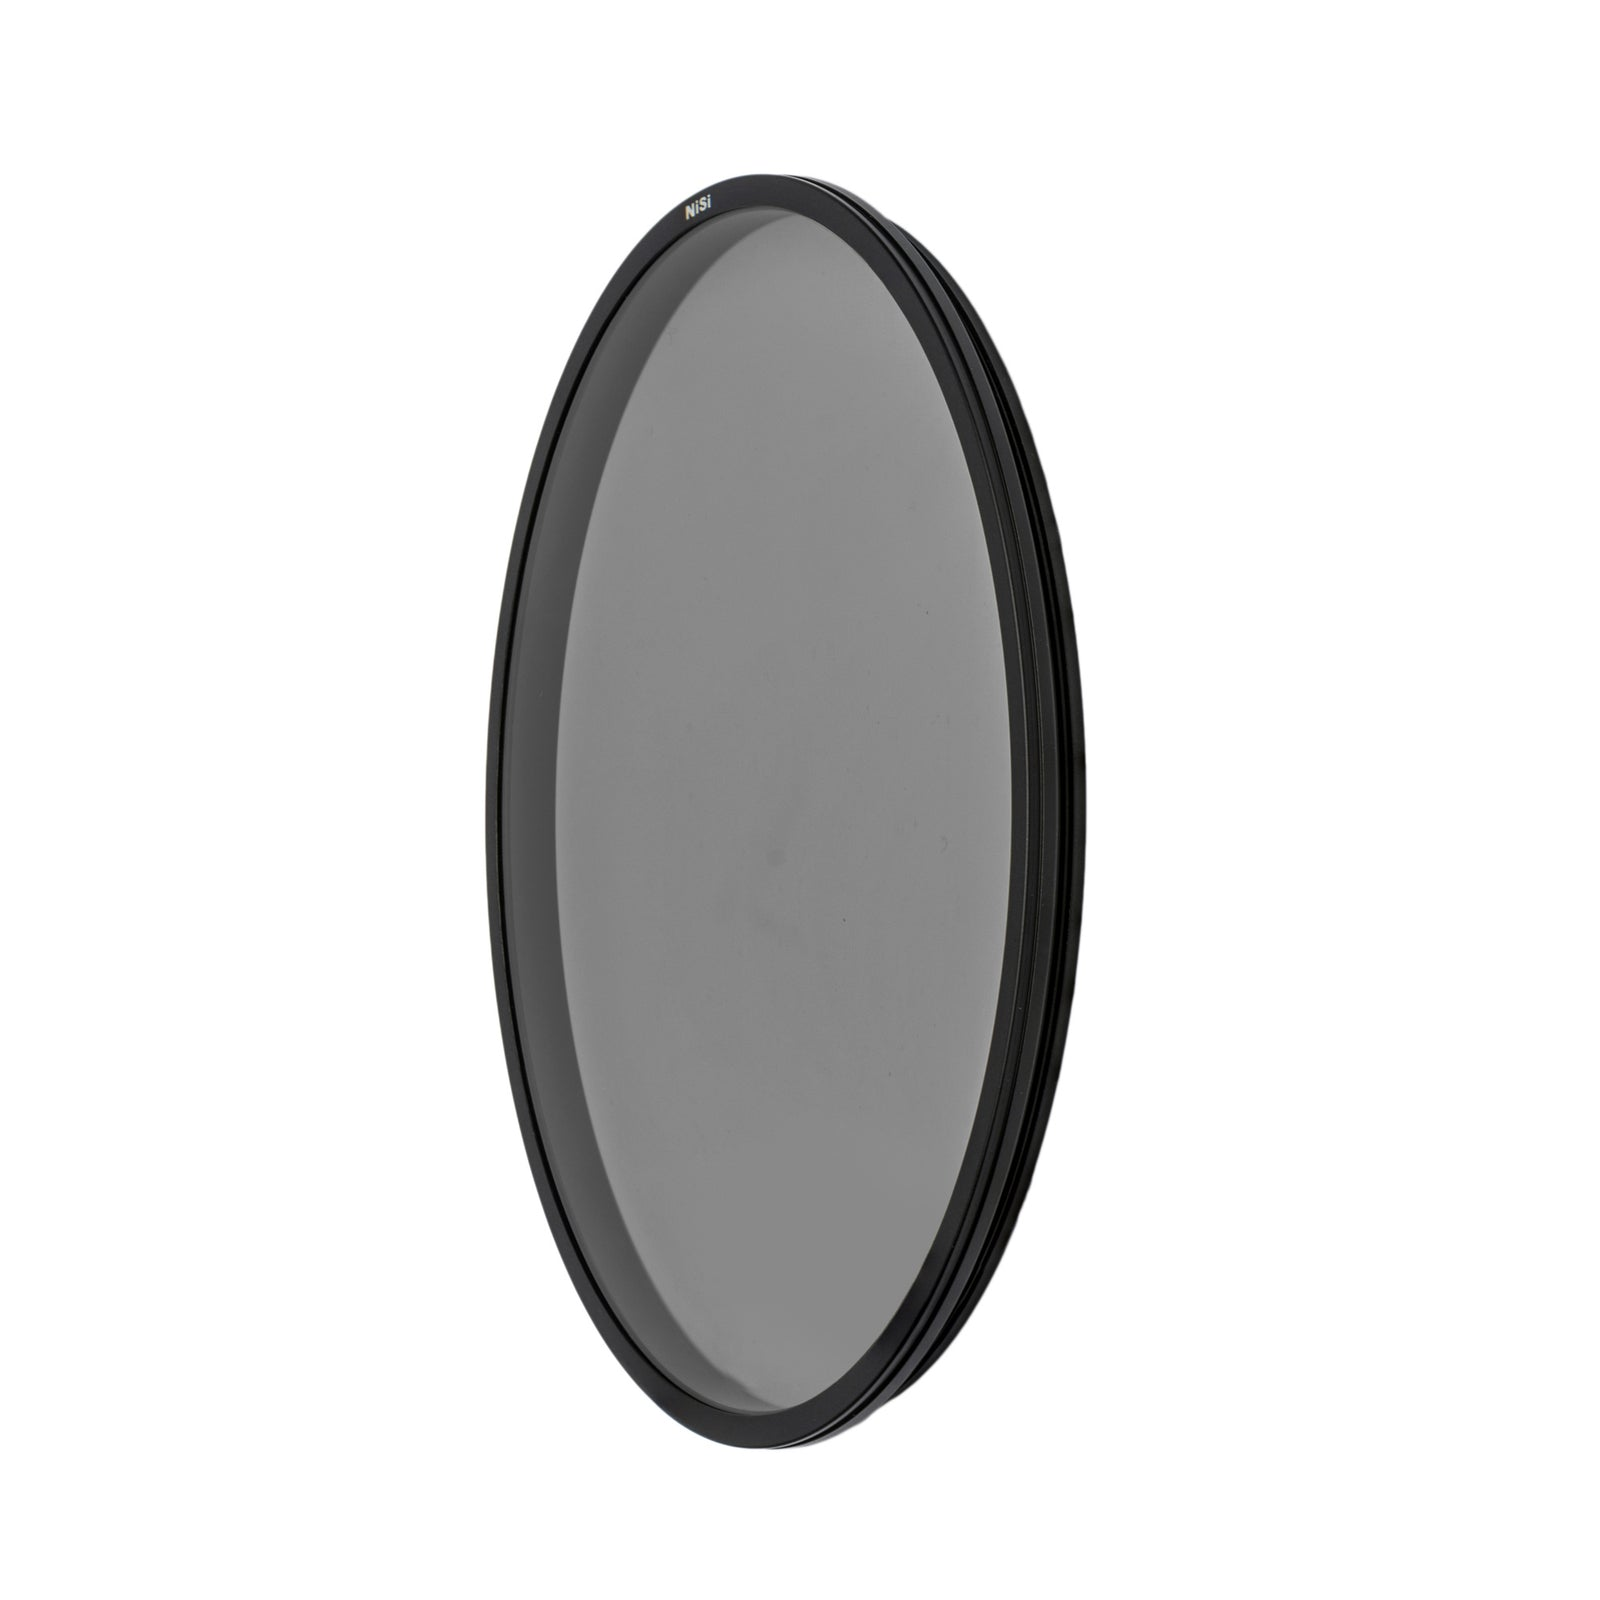 Nisi-Filters-S5-Circular-Neutral-Density-Filter-For-S5-System-Nisi-Filters-Australia